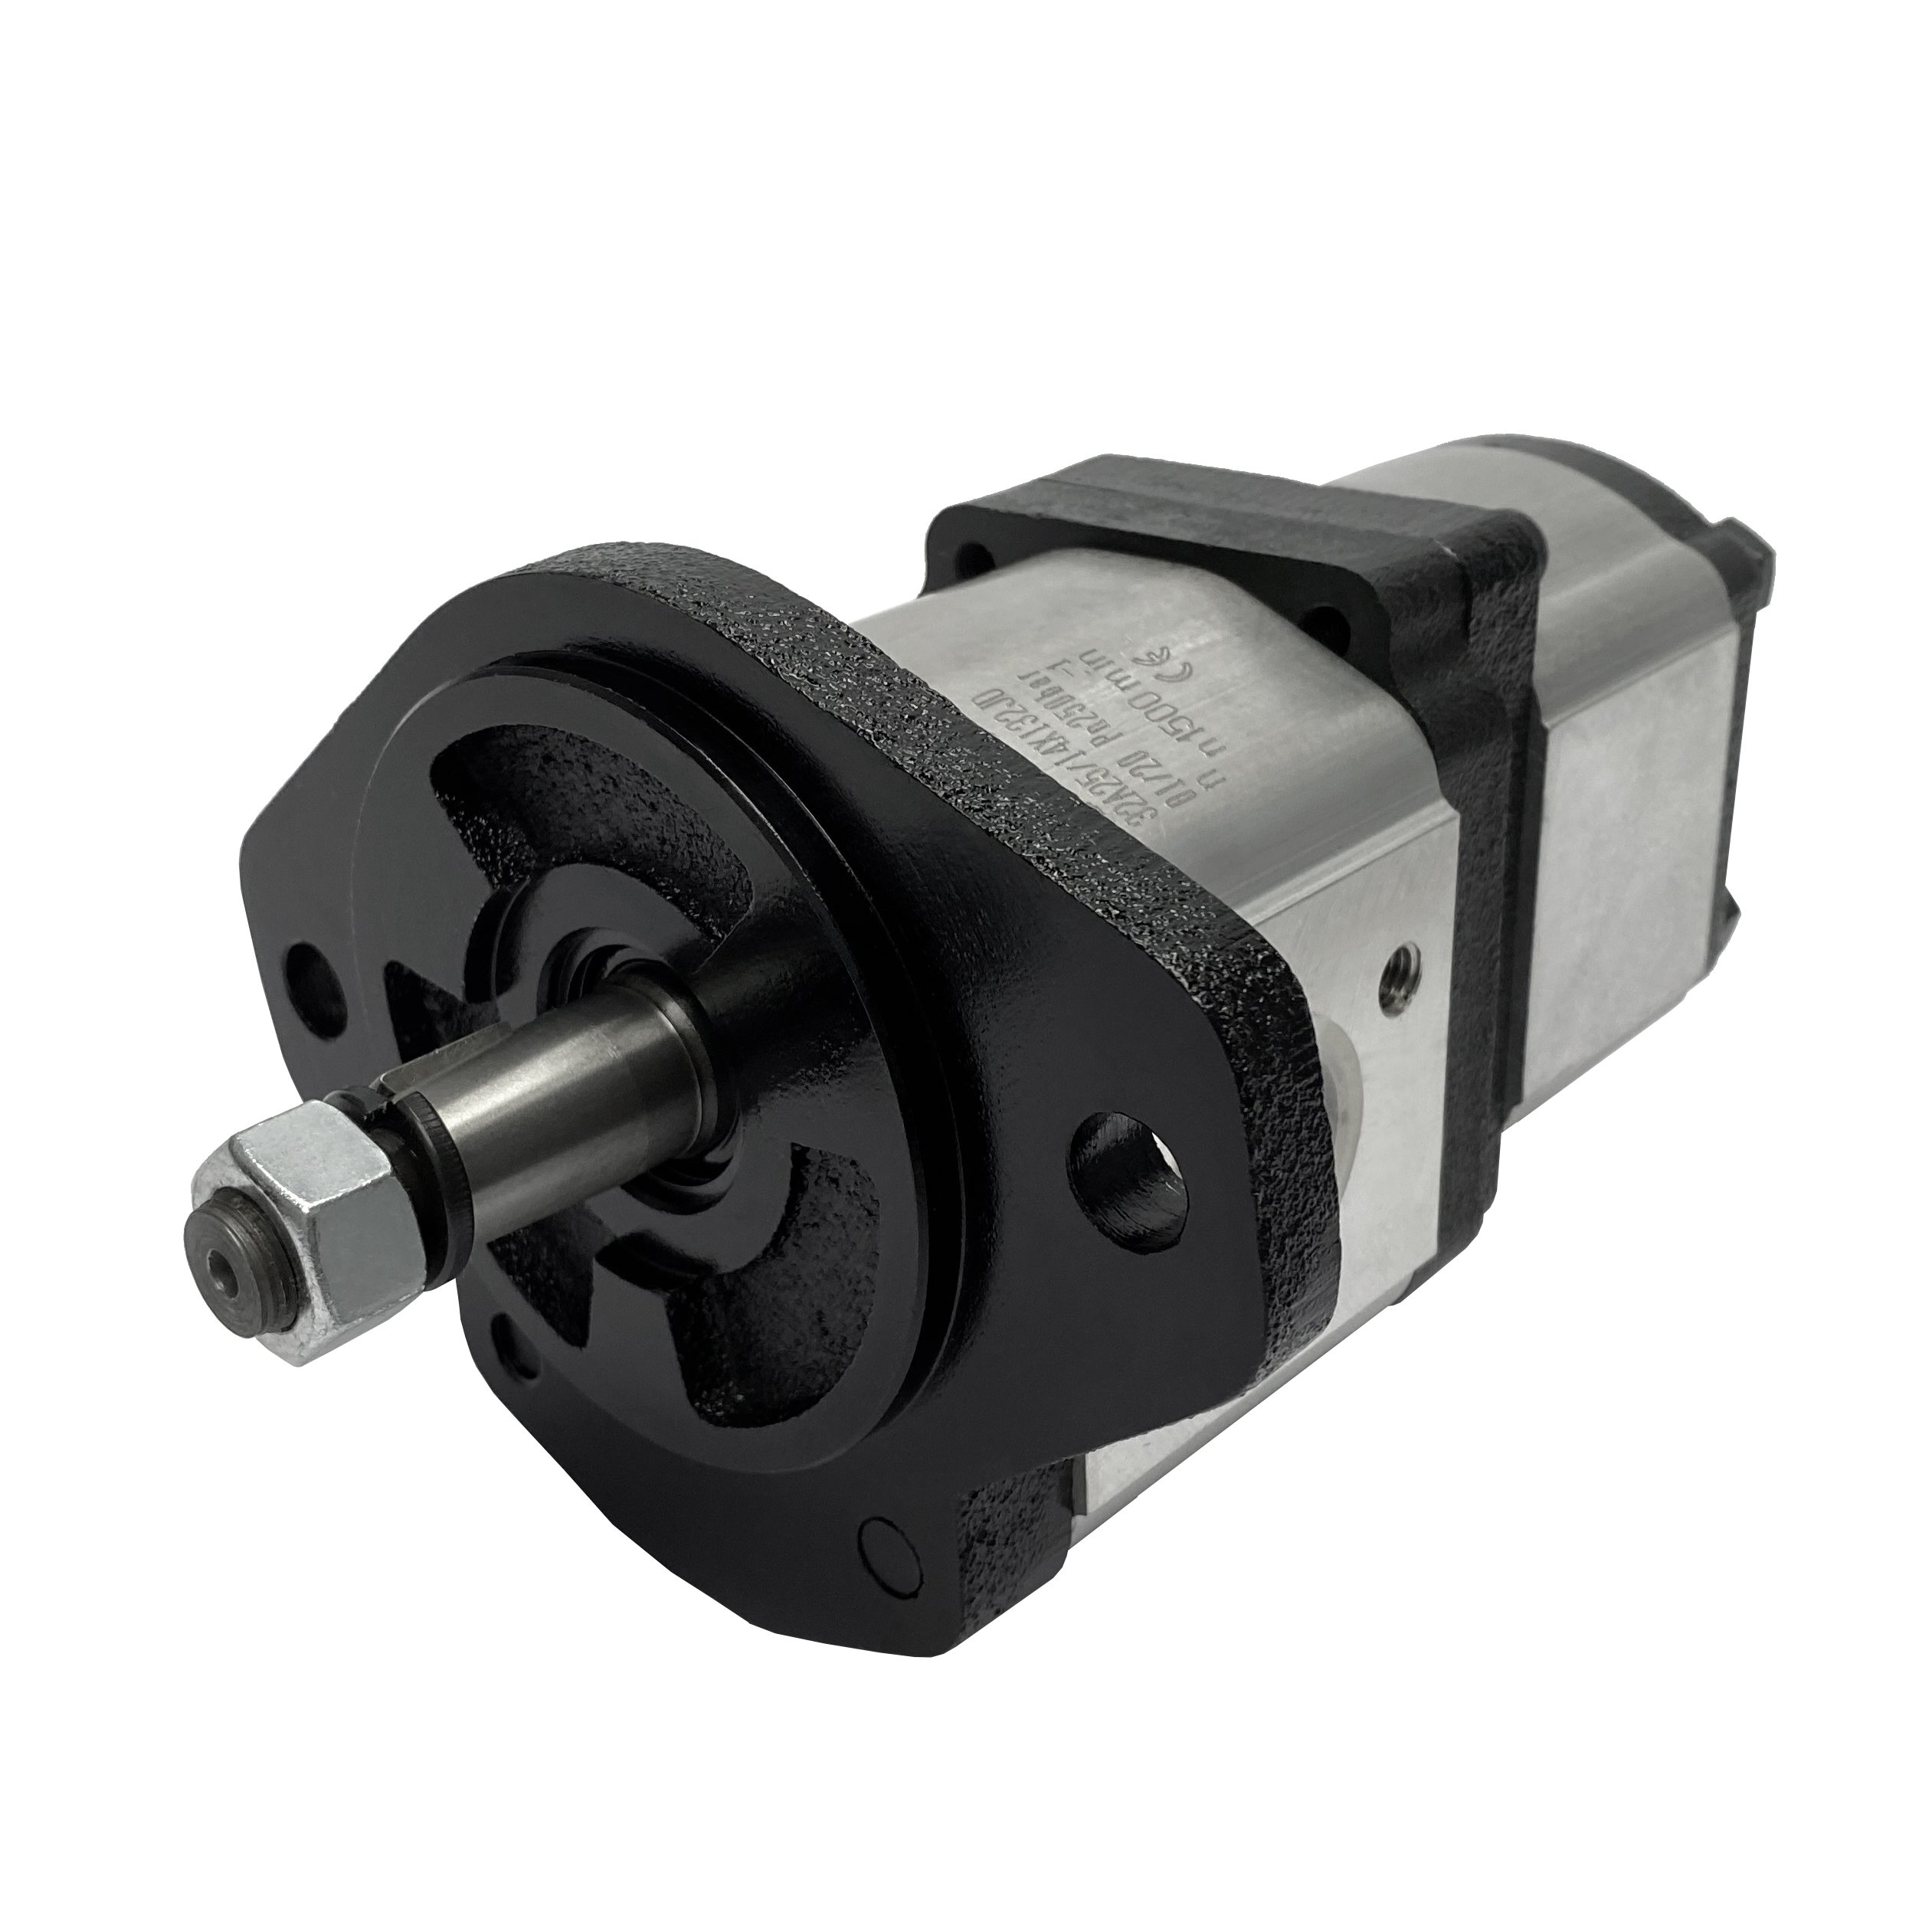 Hydraulic gear pump replacement for John Deere RE279132 | Magister Hydraulics